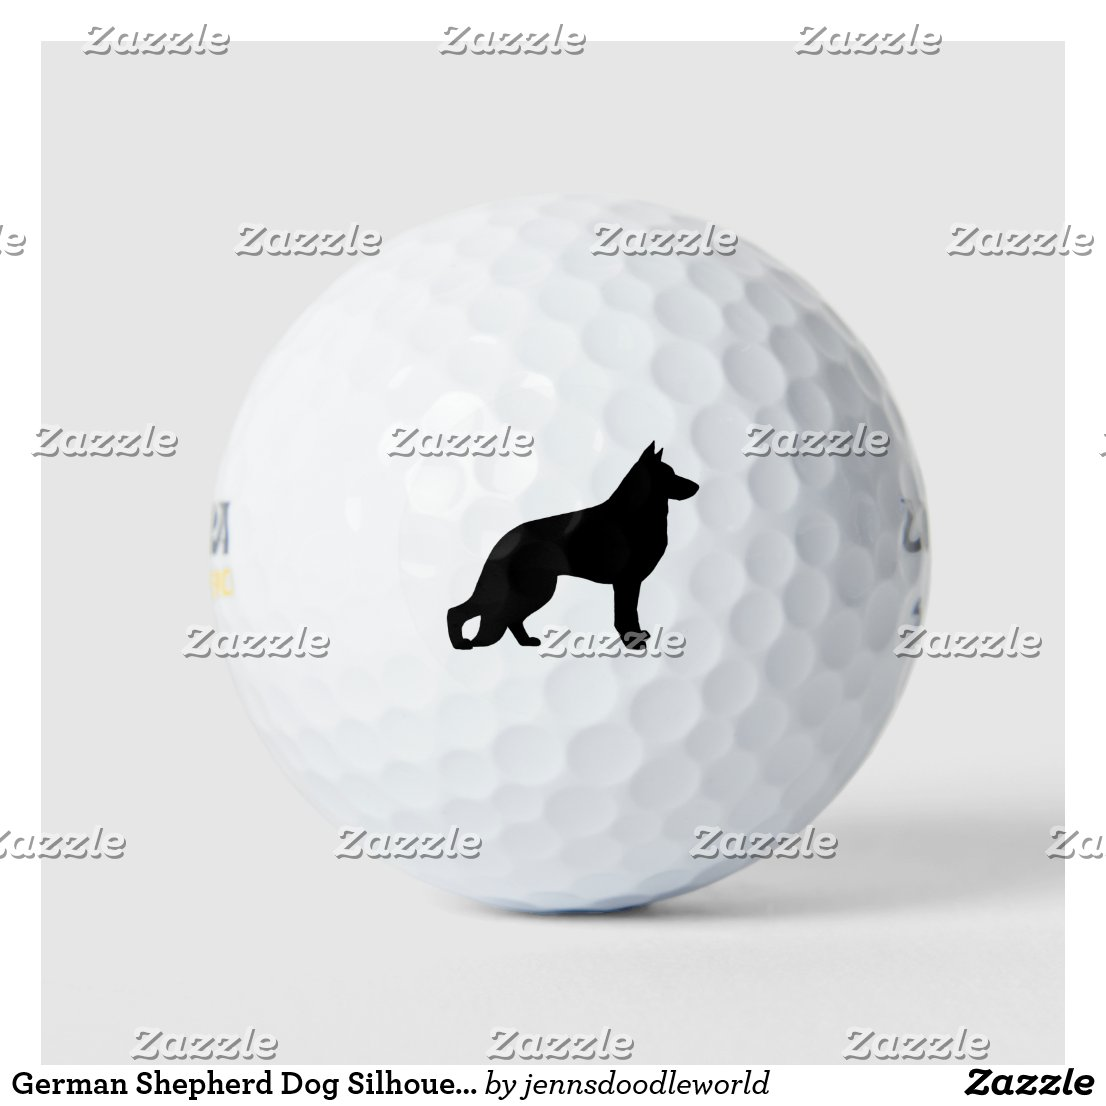 German Shepherd Dog Silhouette Golf Balls